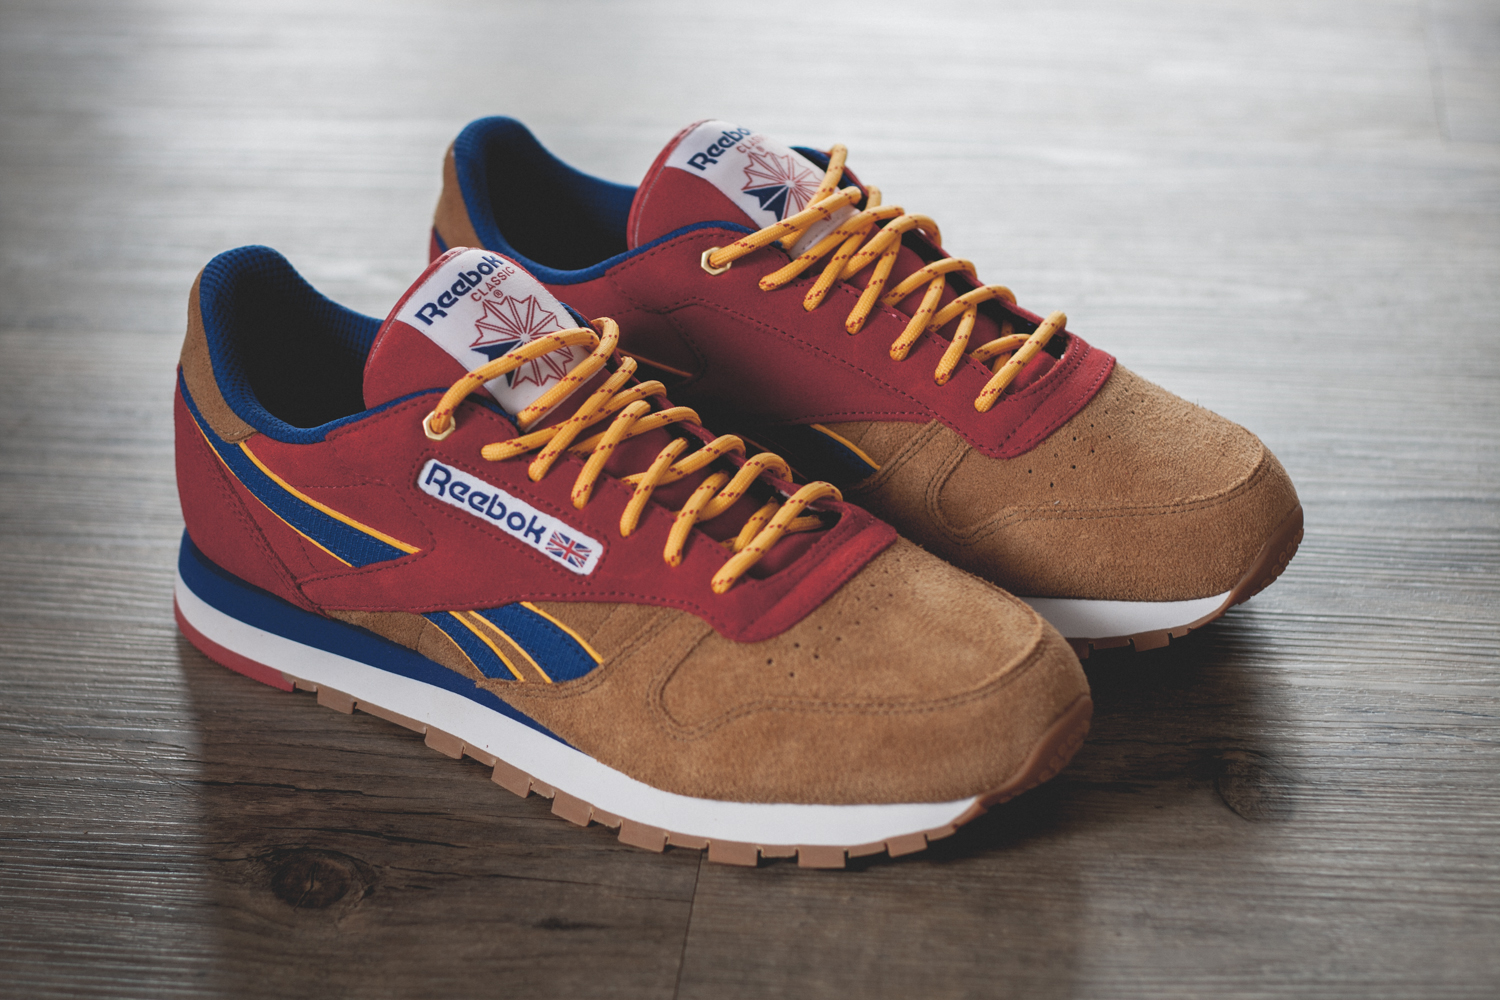 reputable site 09230 94e5e ... SNIPES x Reebok Classic Leather Review Camp Out 3 .